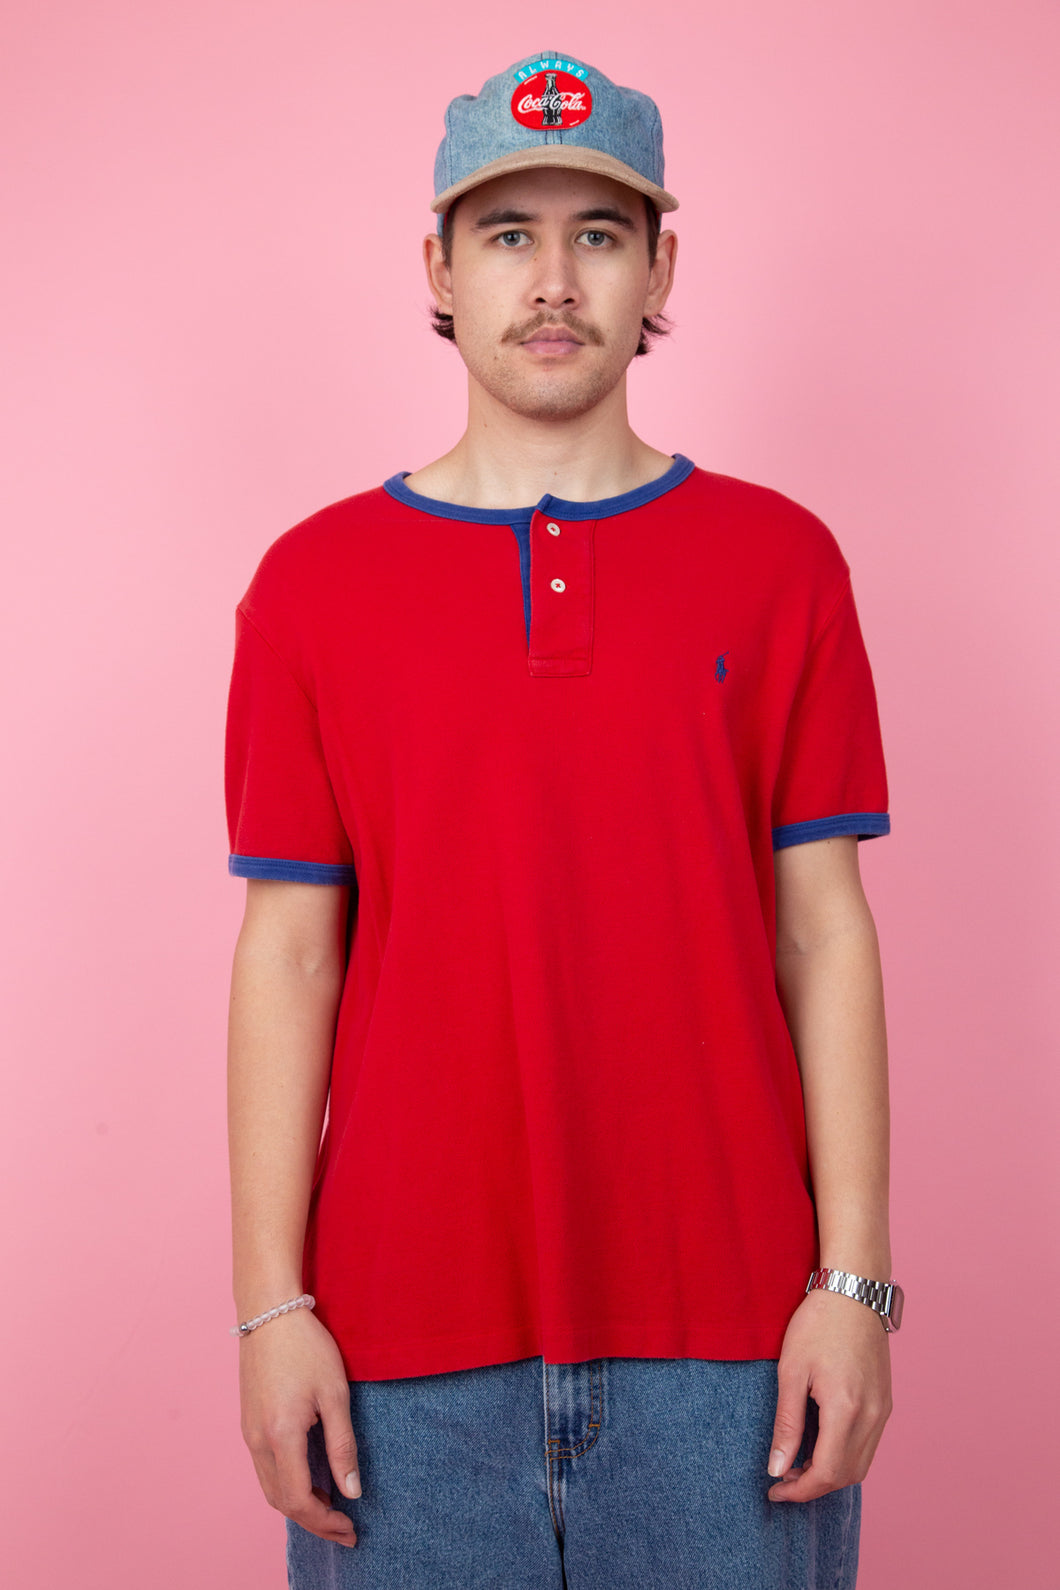 red ralph lauren tee with indigo piping and embroidered detailing